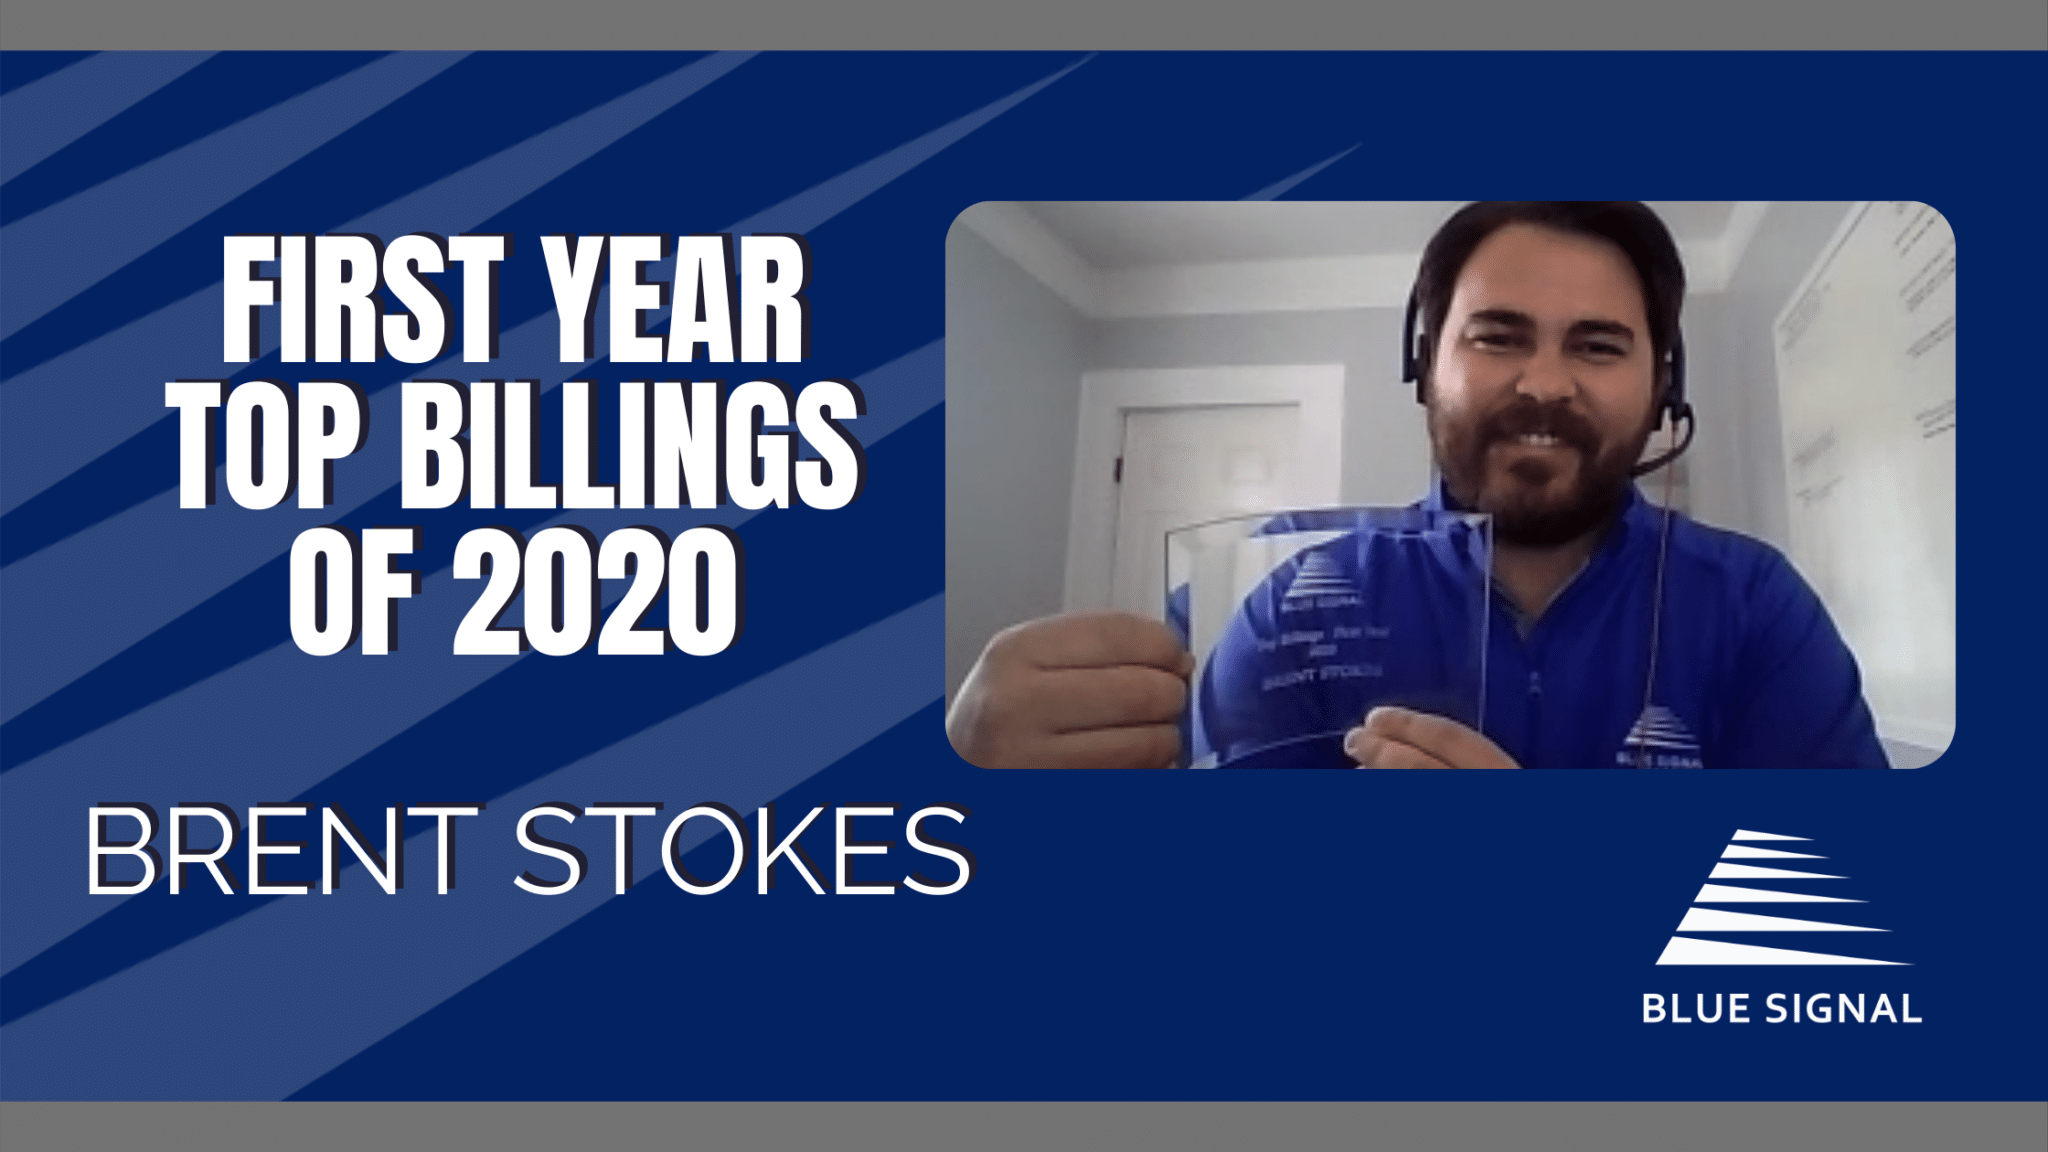 Record-Breaking 2020 Awards - Brent Stokes